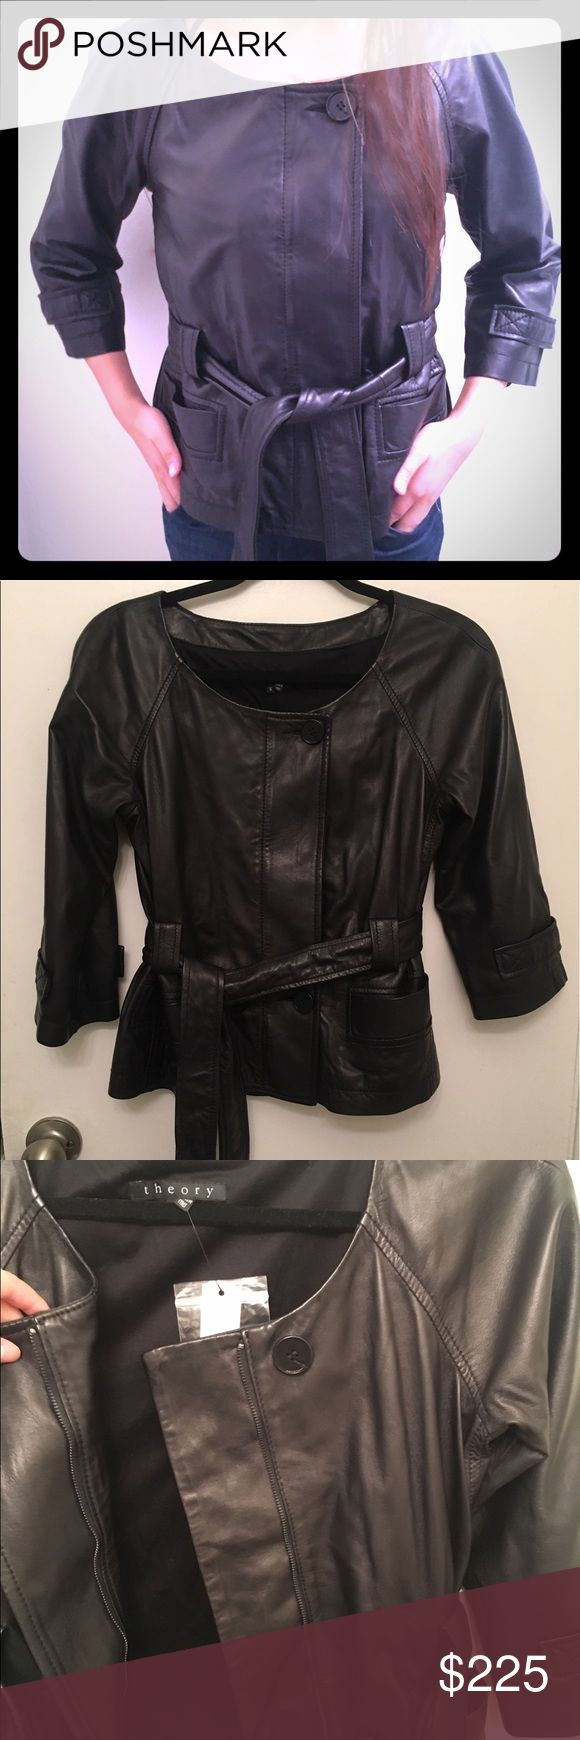 Theory black Lambskin leather jacket with belt Theory lambskin leather jacket. Buttons and zips up with a belt/tie. Size small. Ragata jacket in premier black color. Made in Italy. Retailed for $895 Theory Jackets & Coats